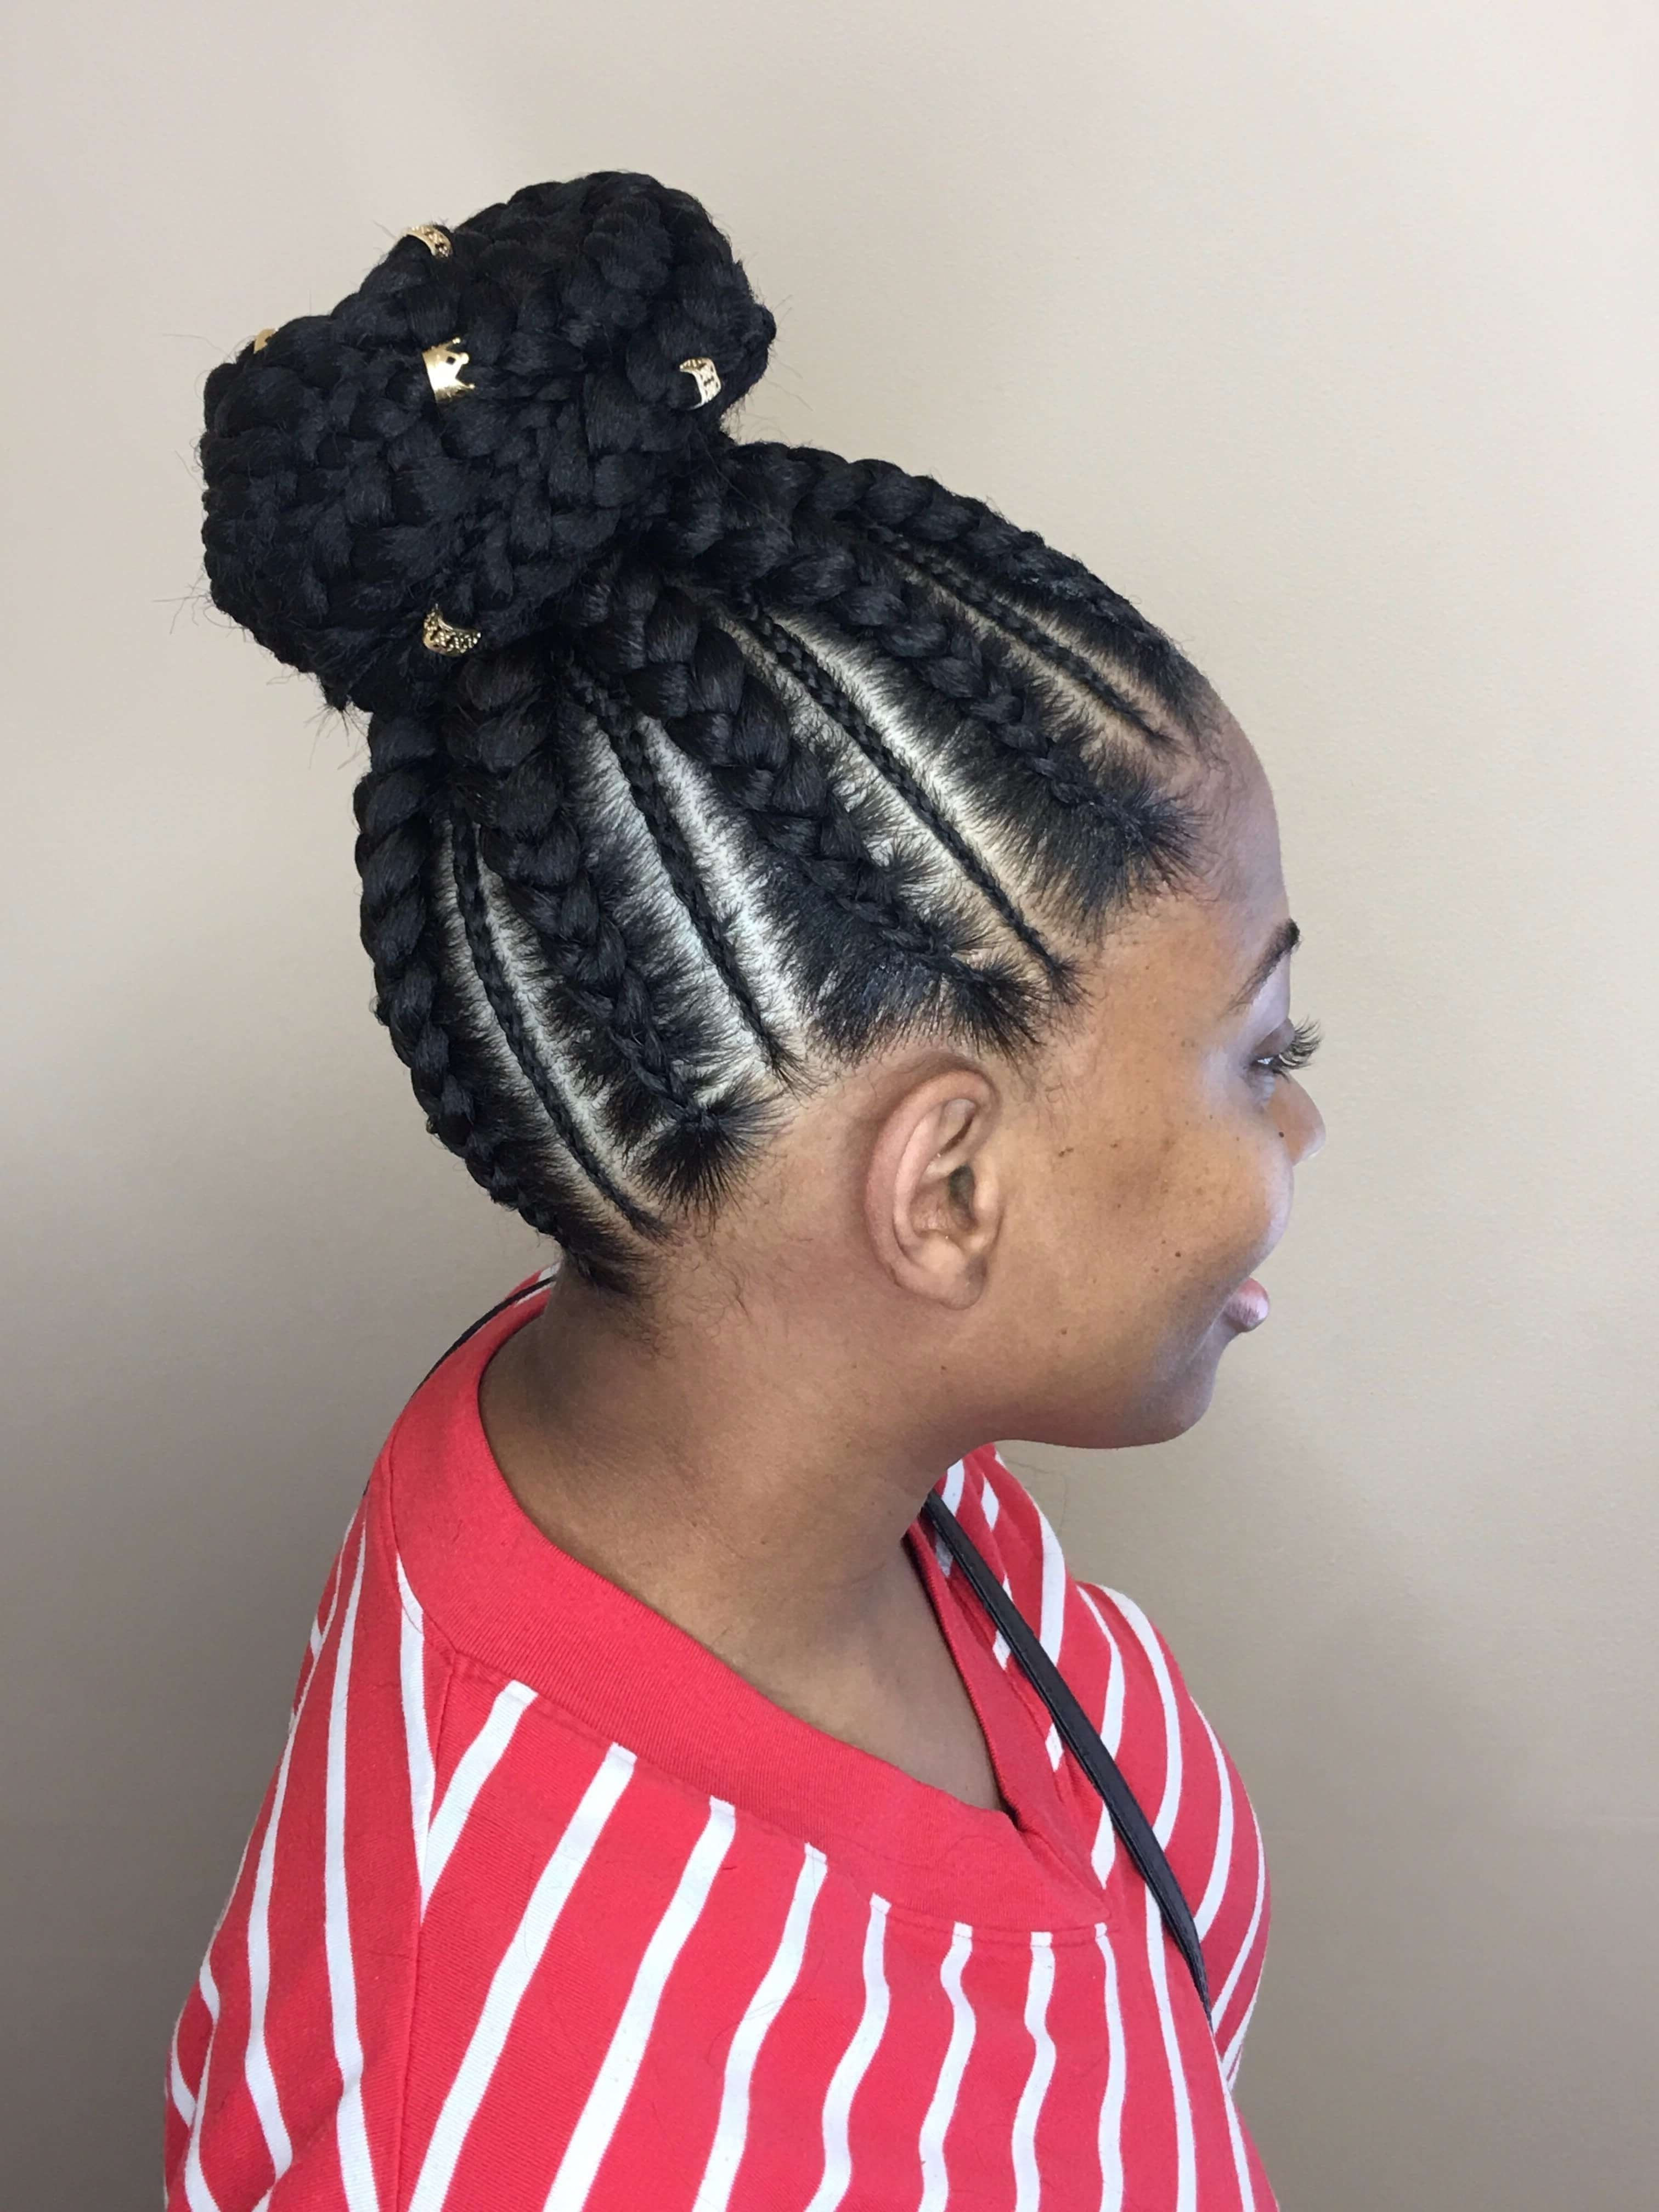 50 Natural Goddess Braids To Bless Ethnic Hair In 2018 Inside Fashionable Cornrow Updo Braid Hairstyles (Gallery 11 of 15)